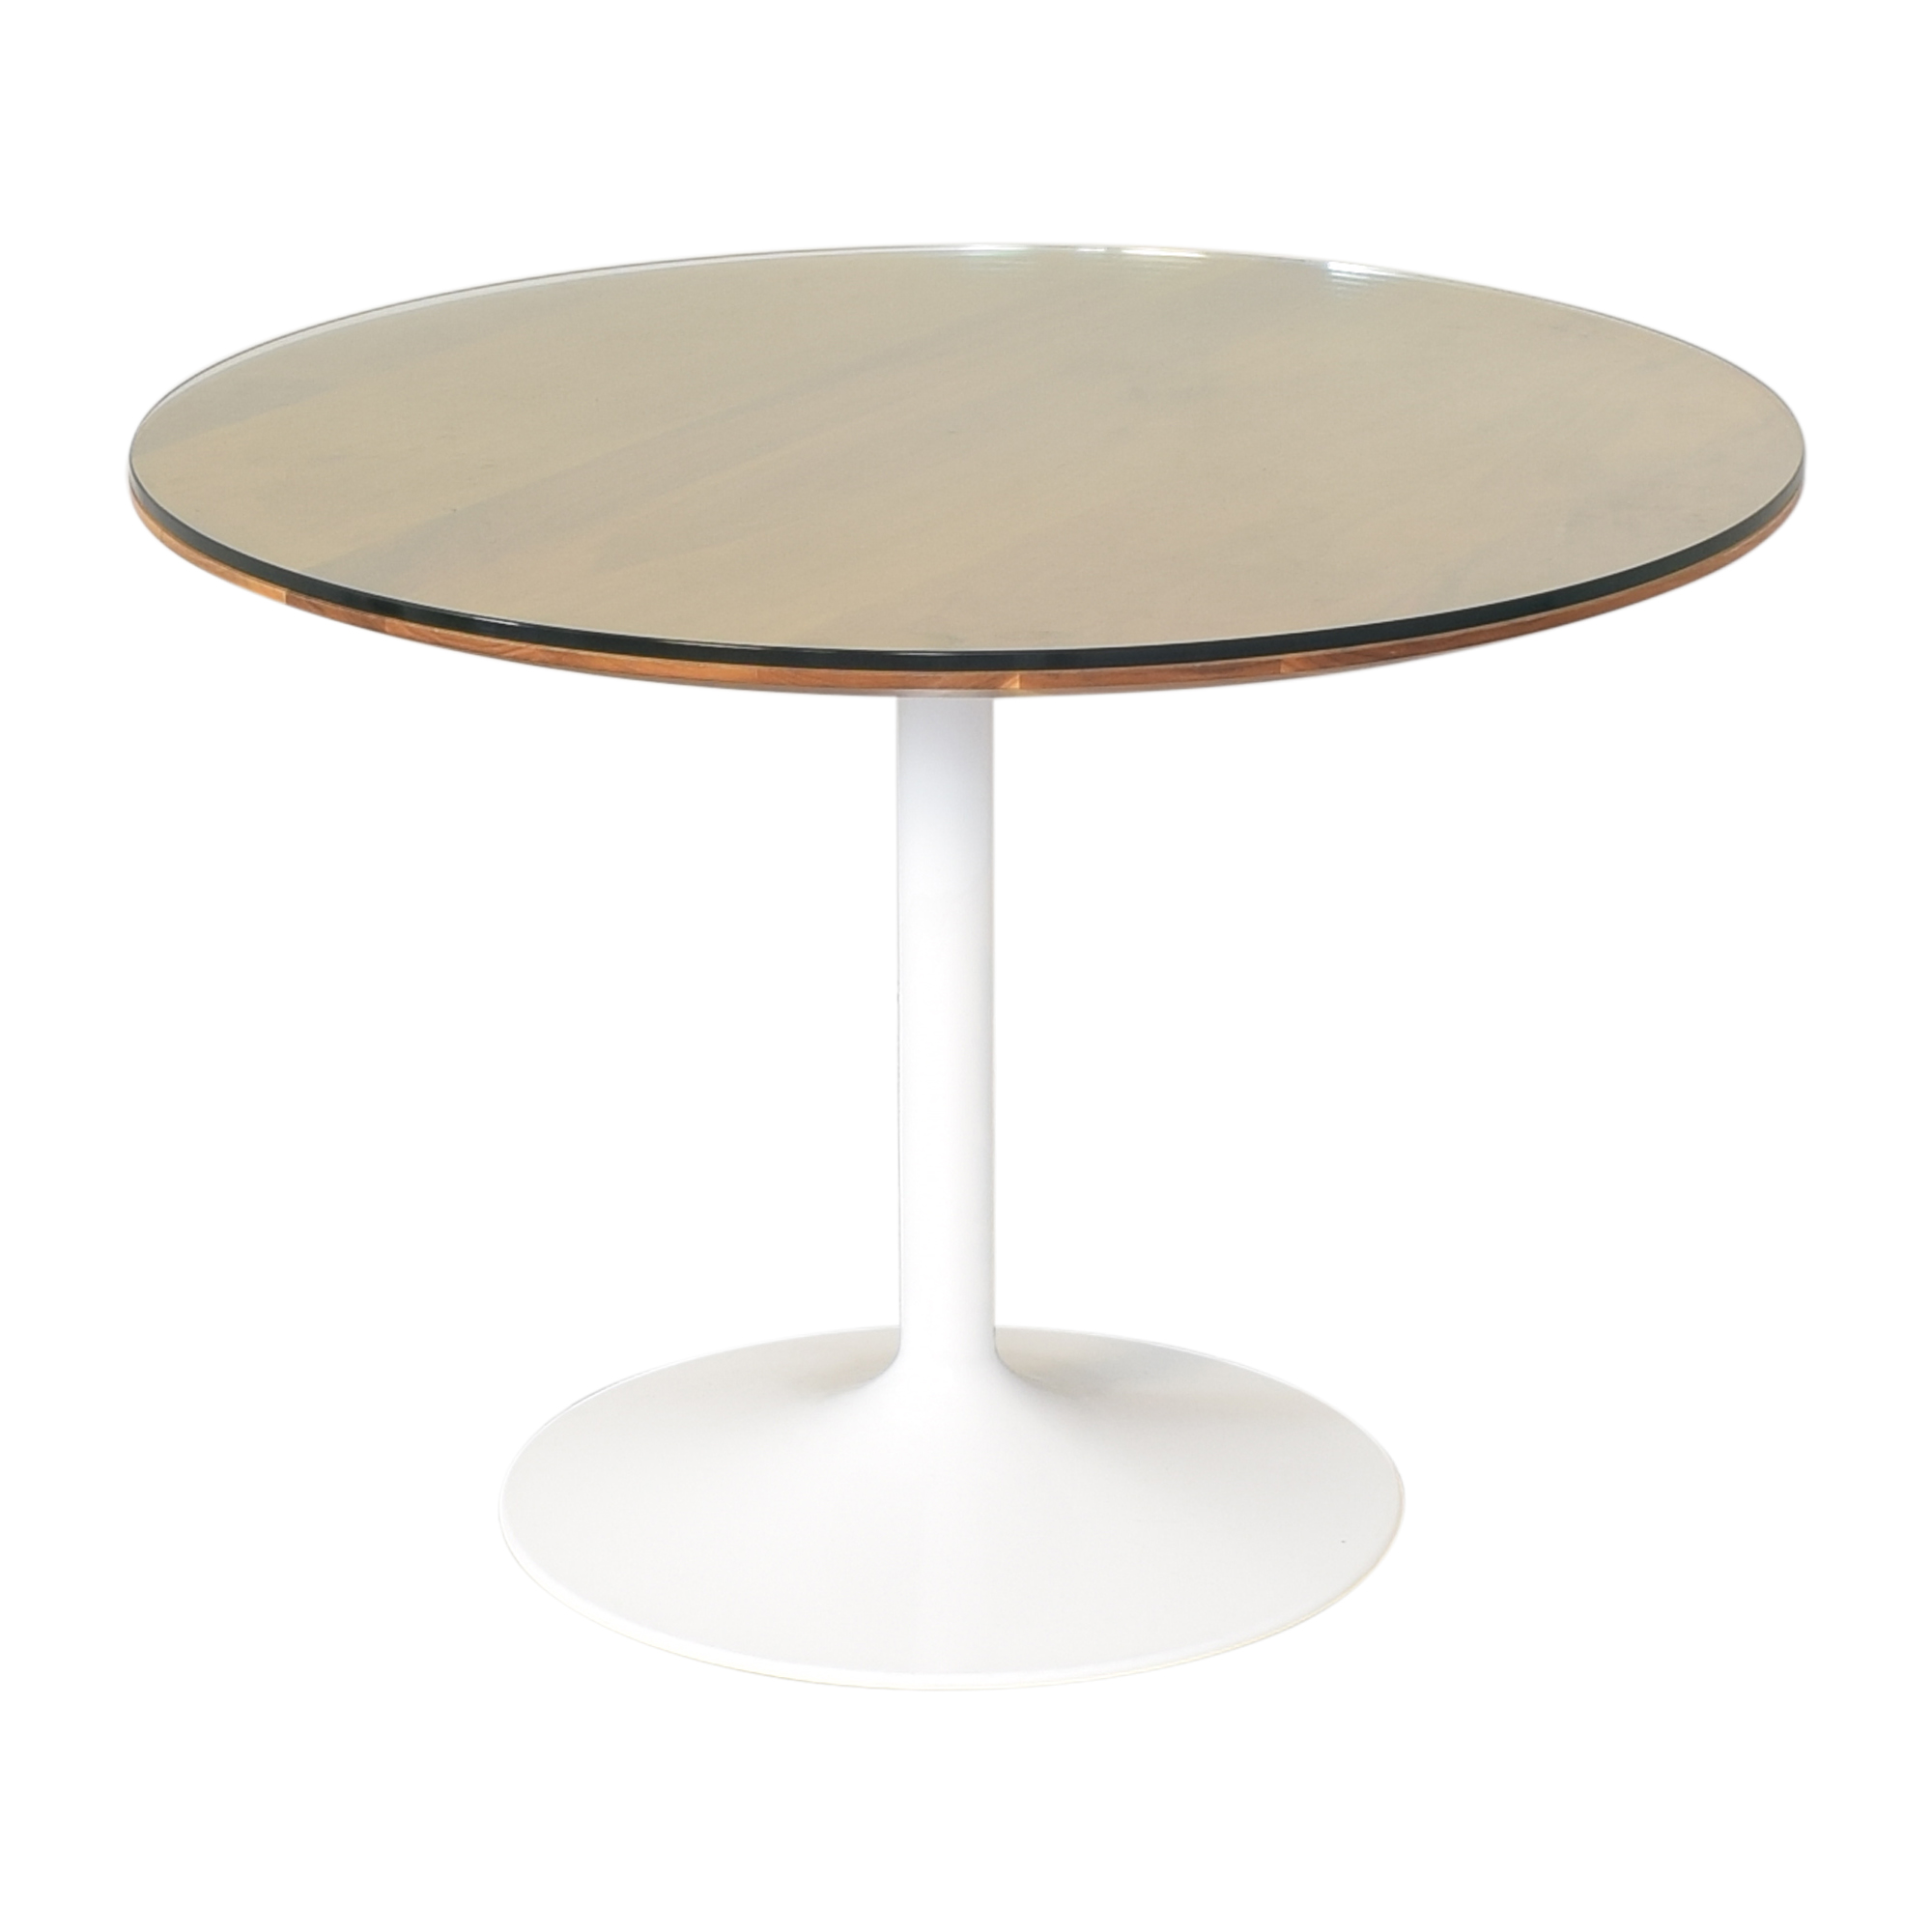 Room & Board Room & Board Aria Round Dining Table pa